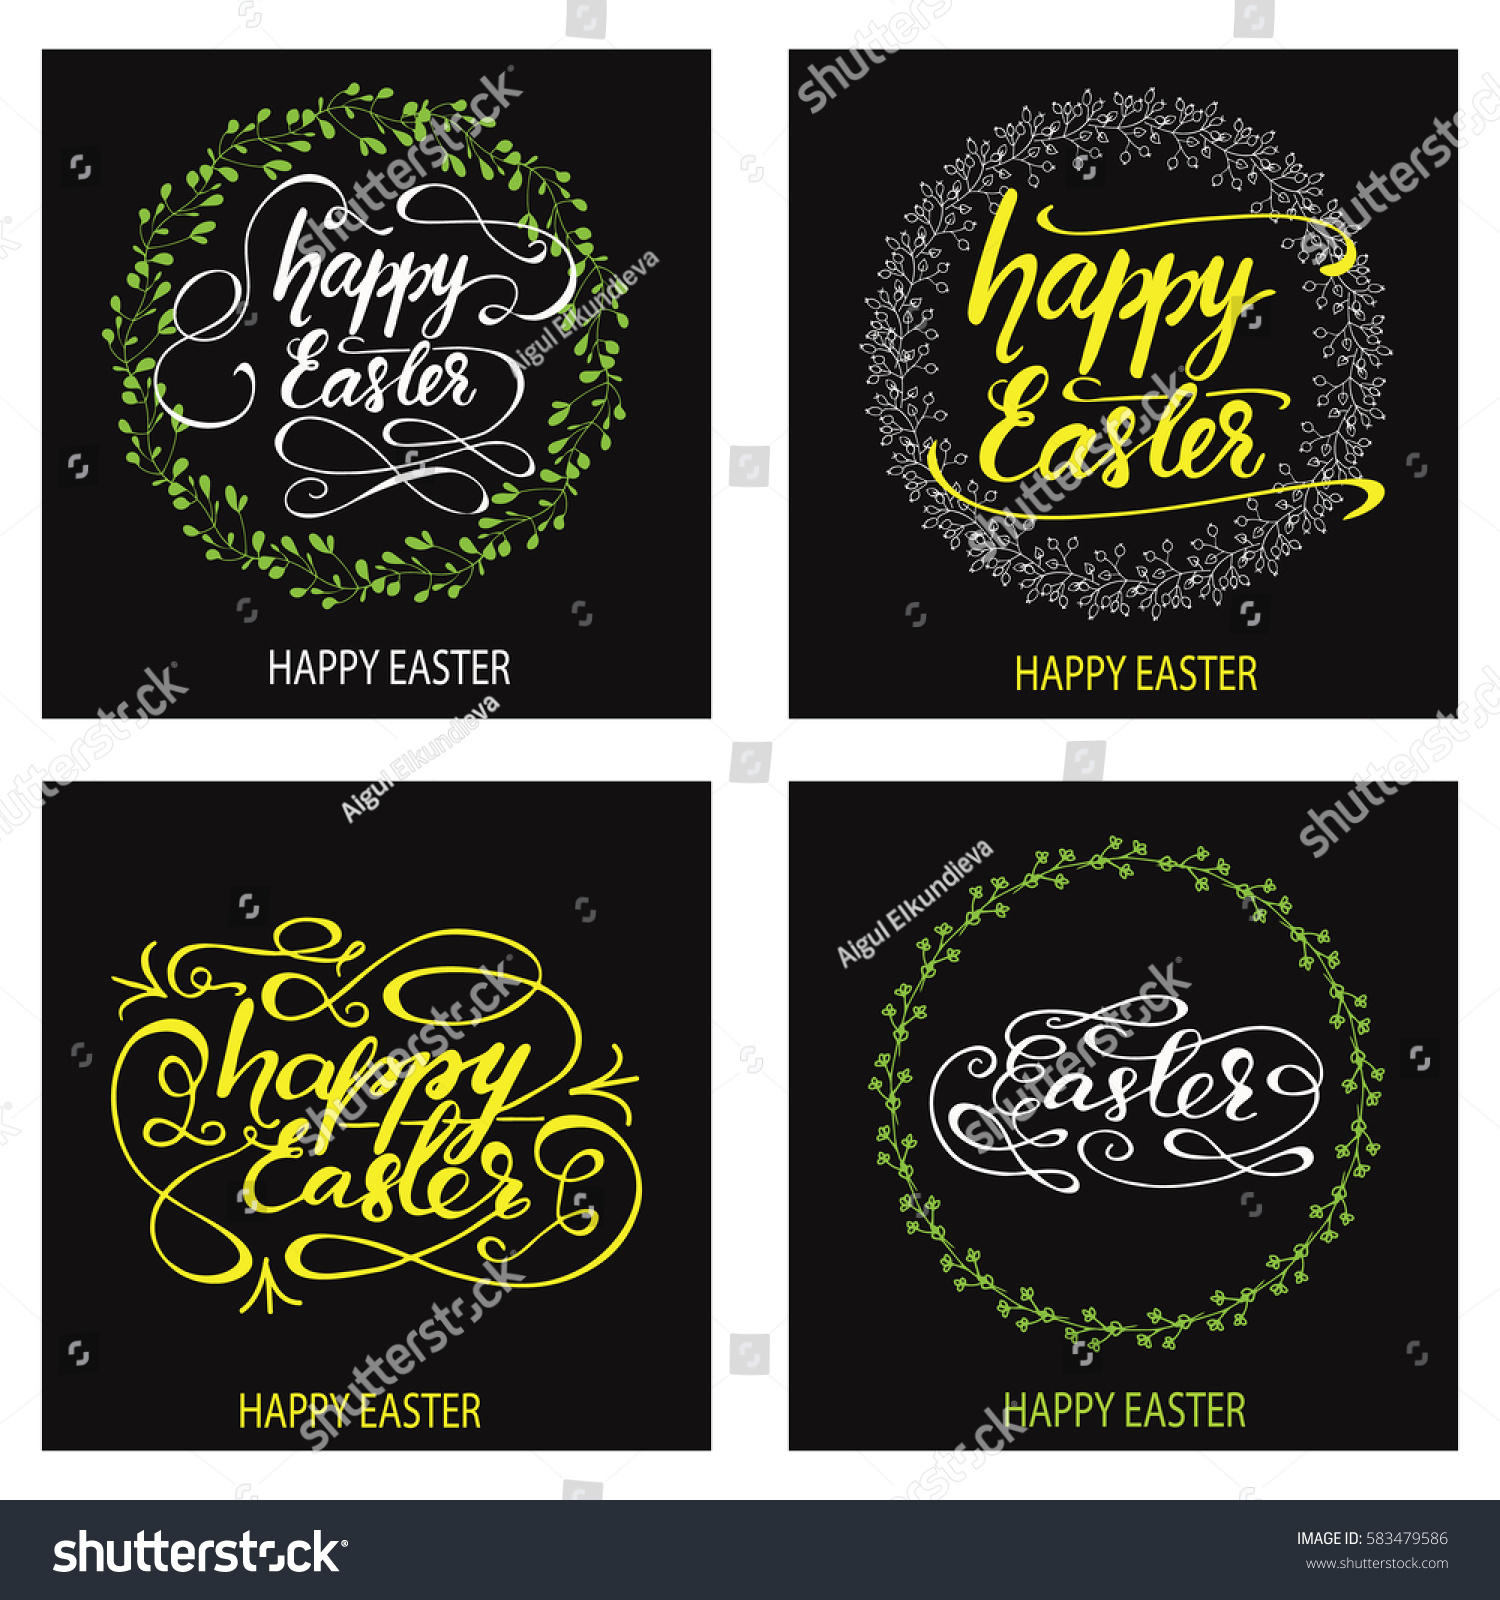 Set Greeting Cards Designed Easter Hand Stock Vector Royalty Free